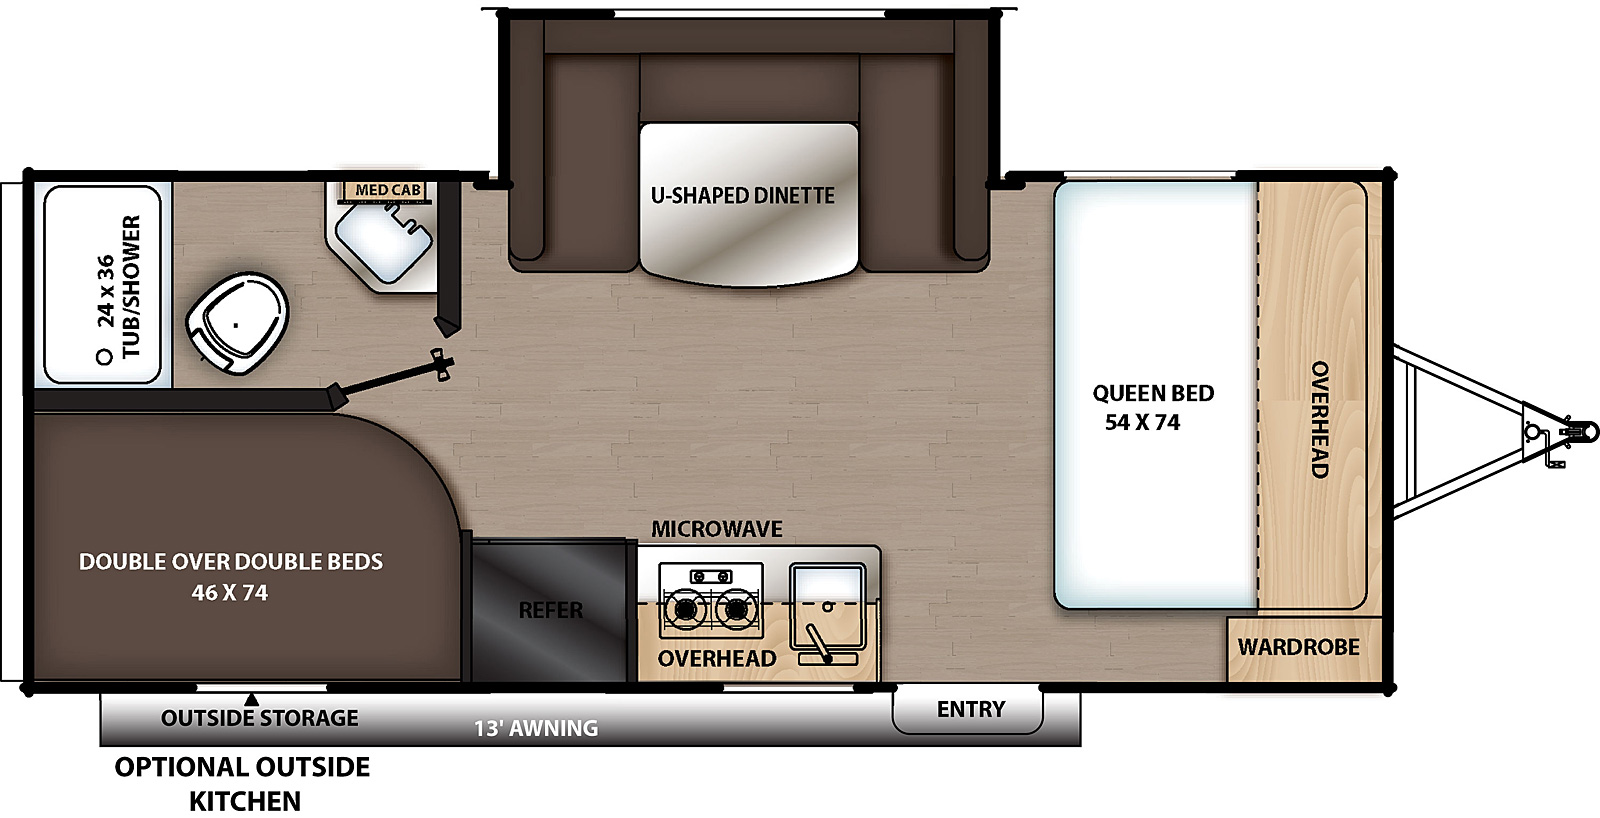 Floorplan for Catalina Summit Series 7 Travel Trailer model 184BHS